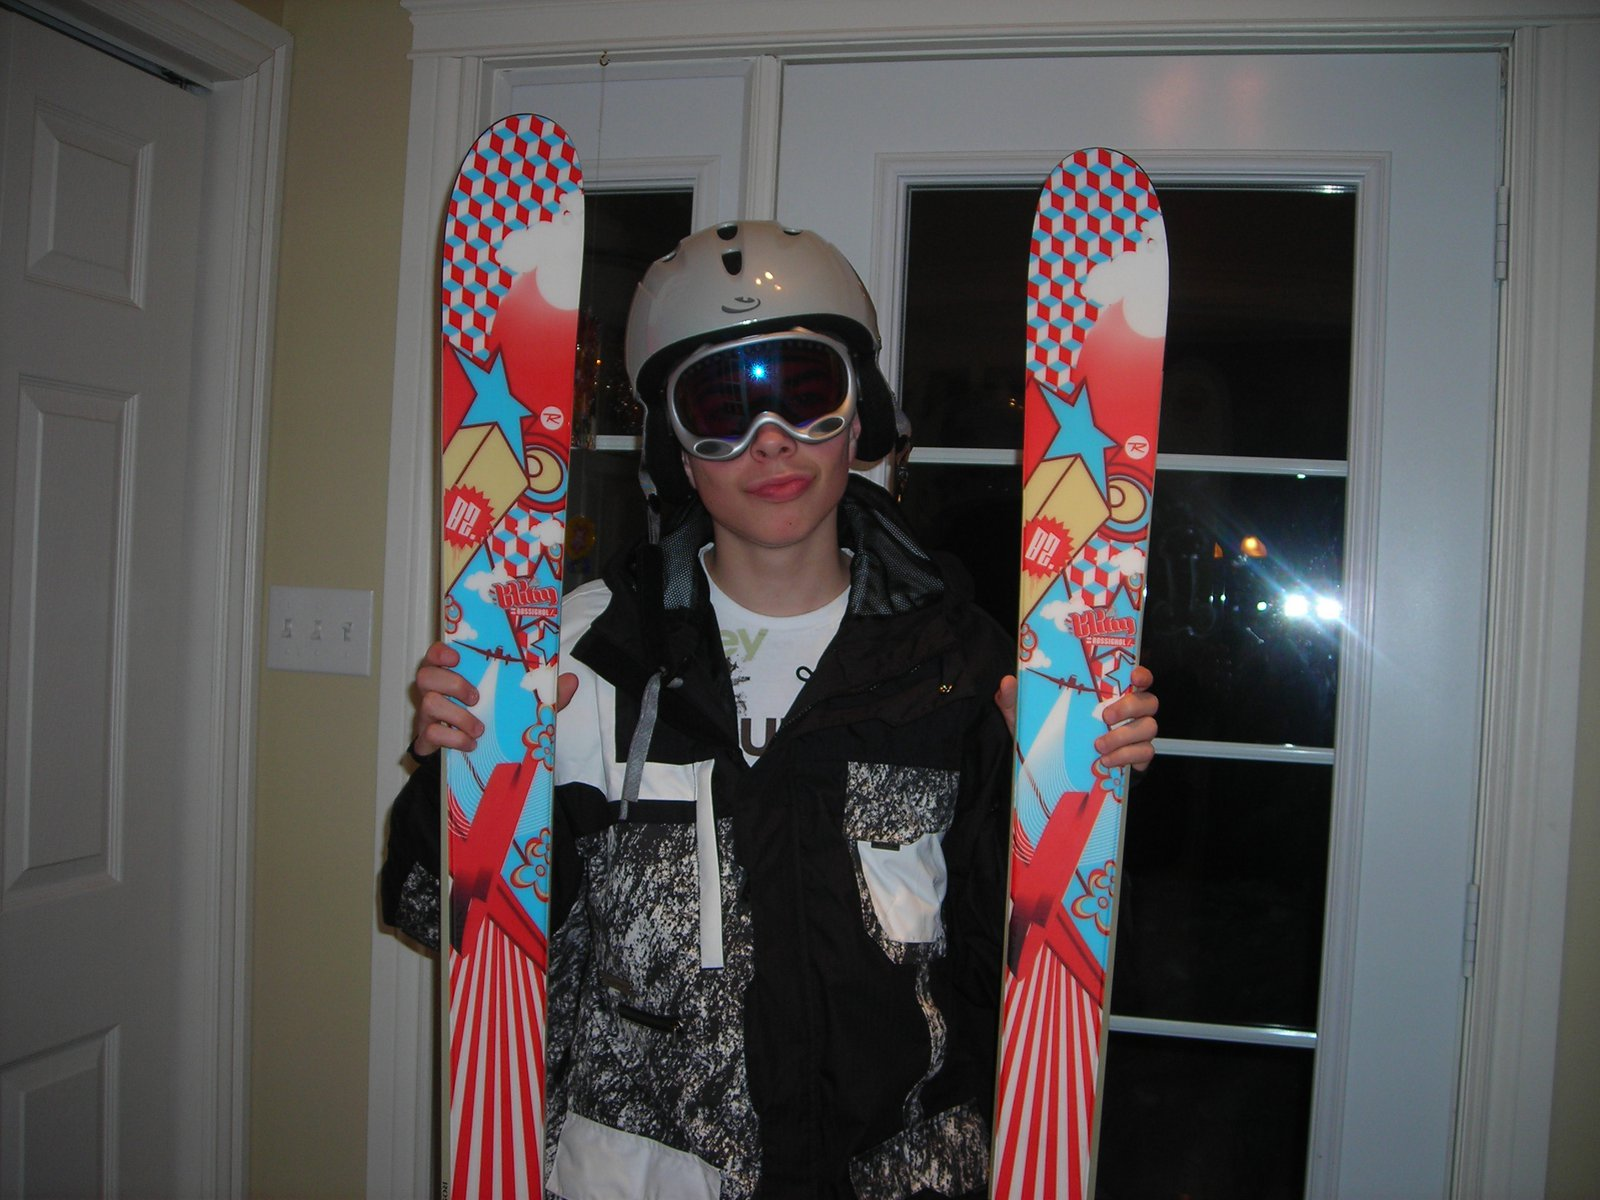 Moi with my skis